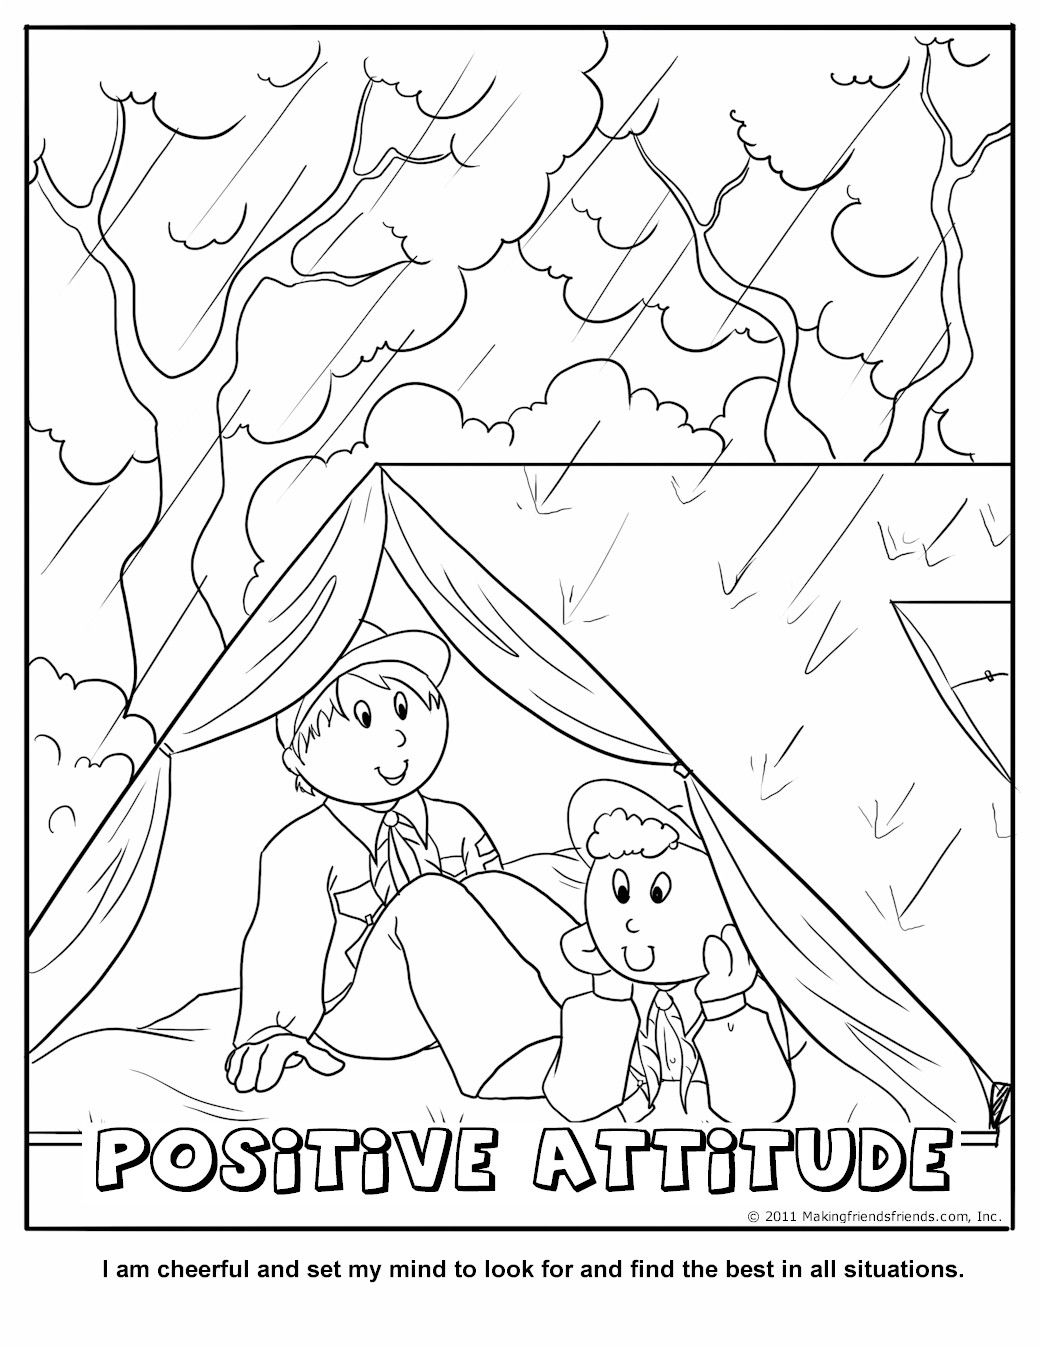 Positive Attitude Coloring Page Wolf Cub Achievement 6a Ideas